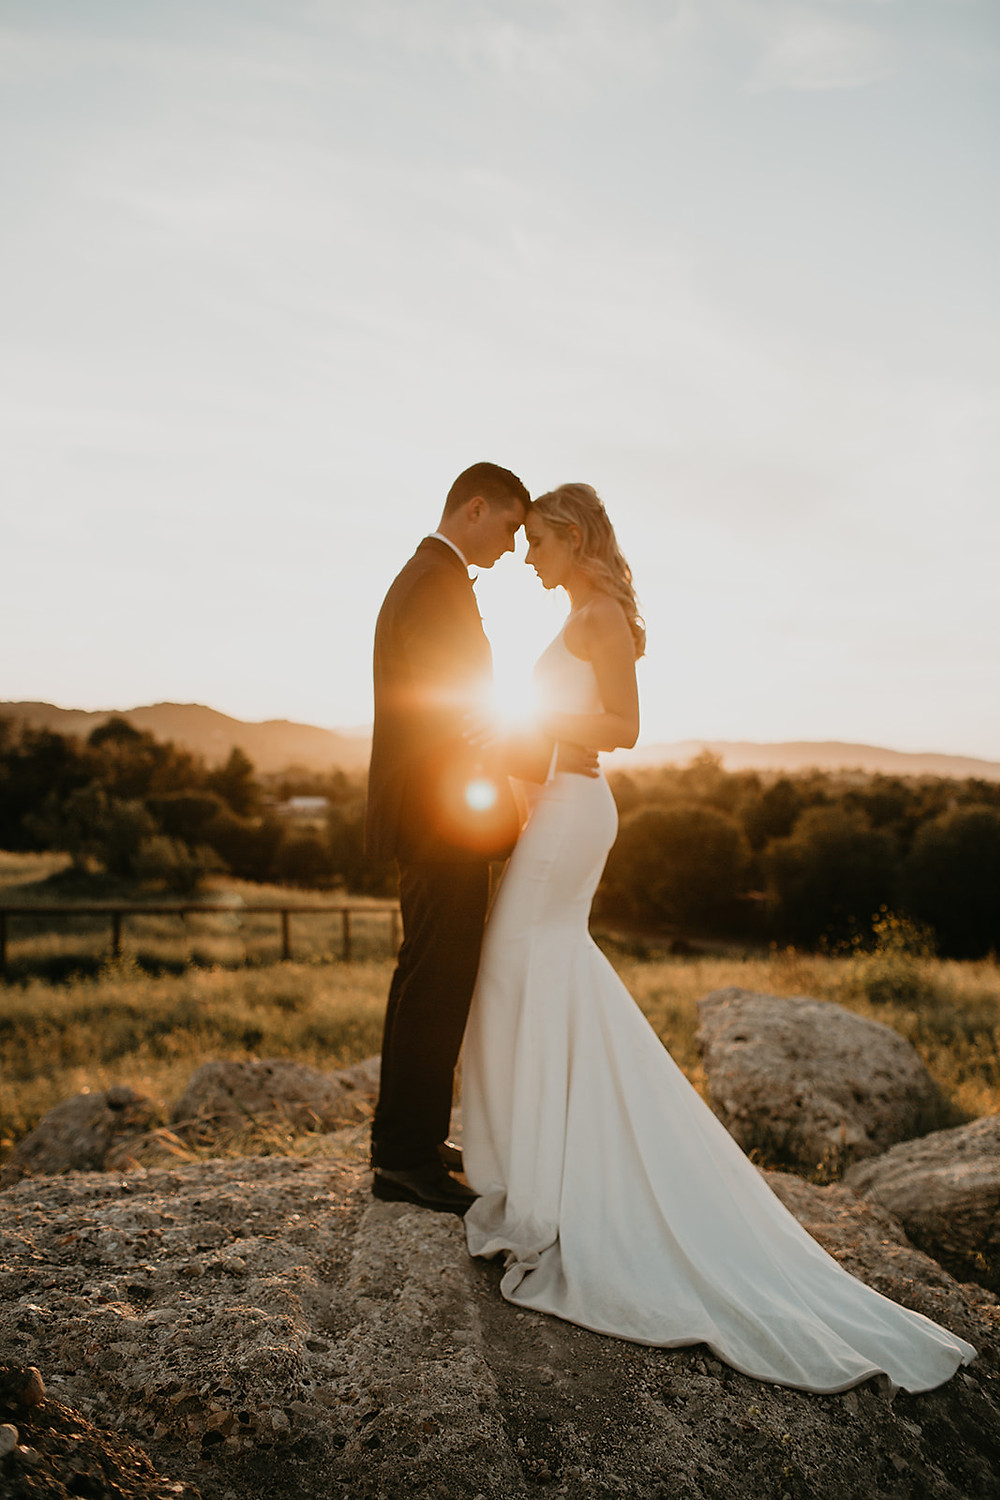 San Luis obispo california, pepper tree ranch wedding, Dallas wedding photographer, slo, elegant wedding, California wedding photographer, bride and groom portraits, golden hour portraits